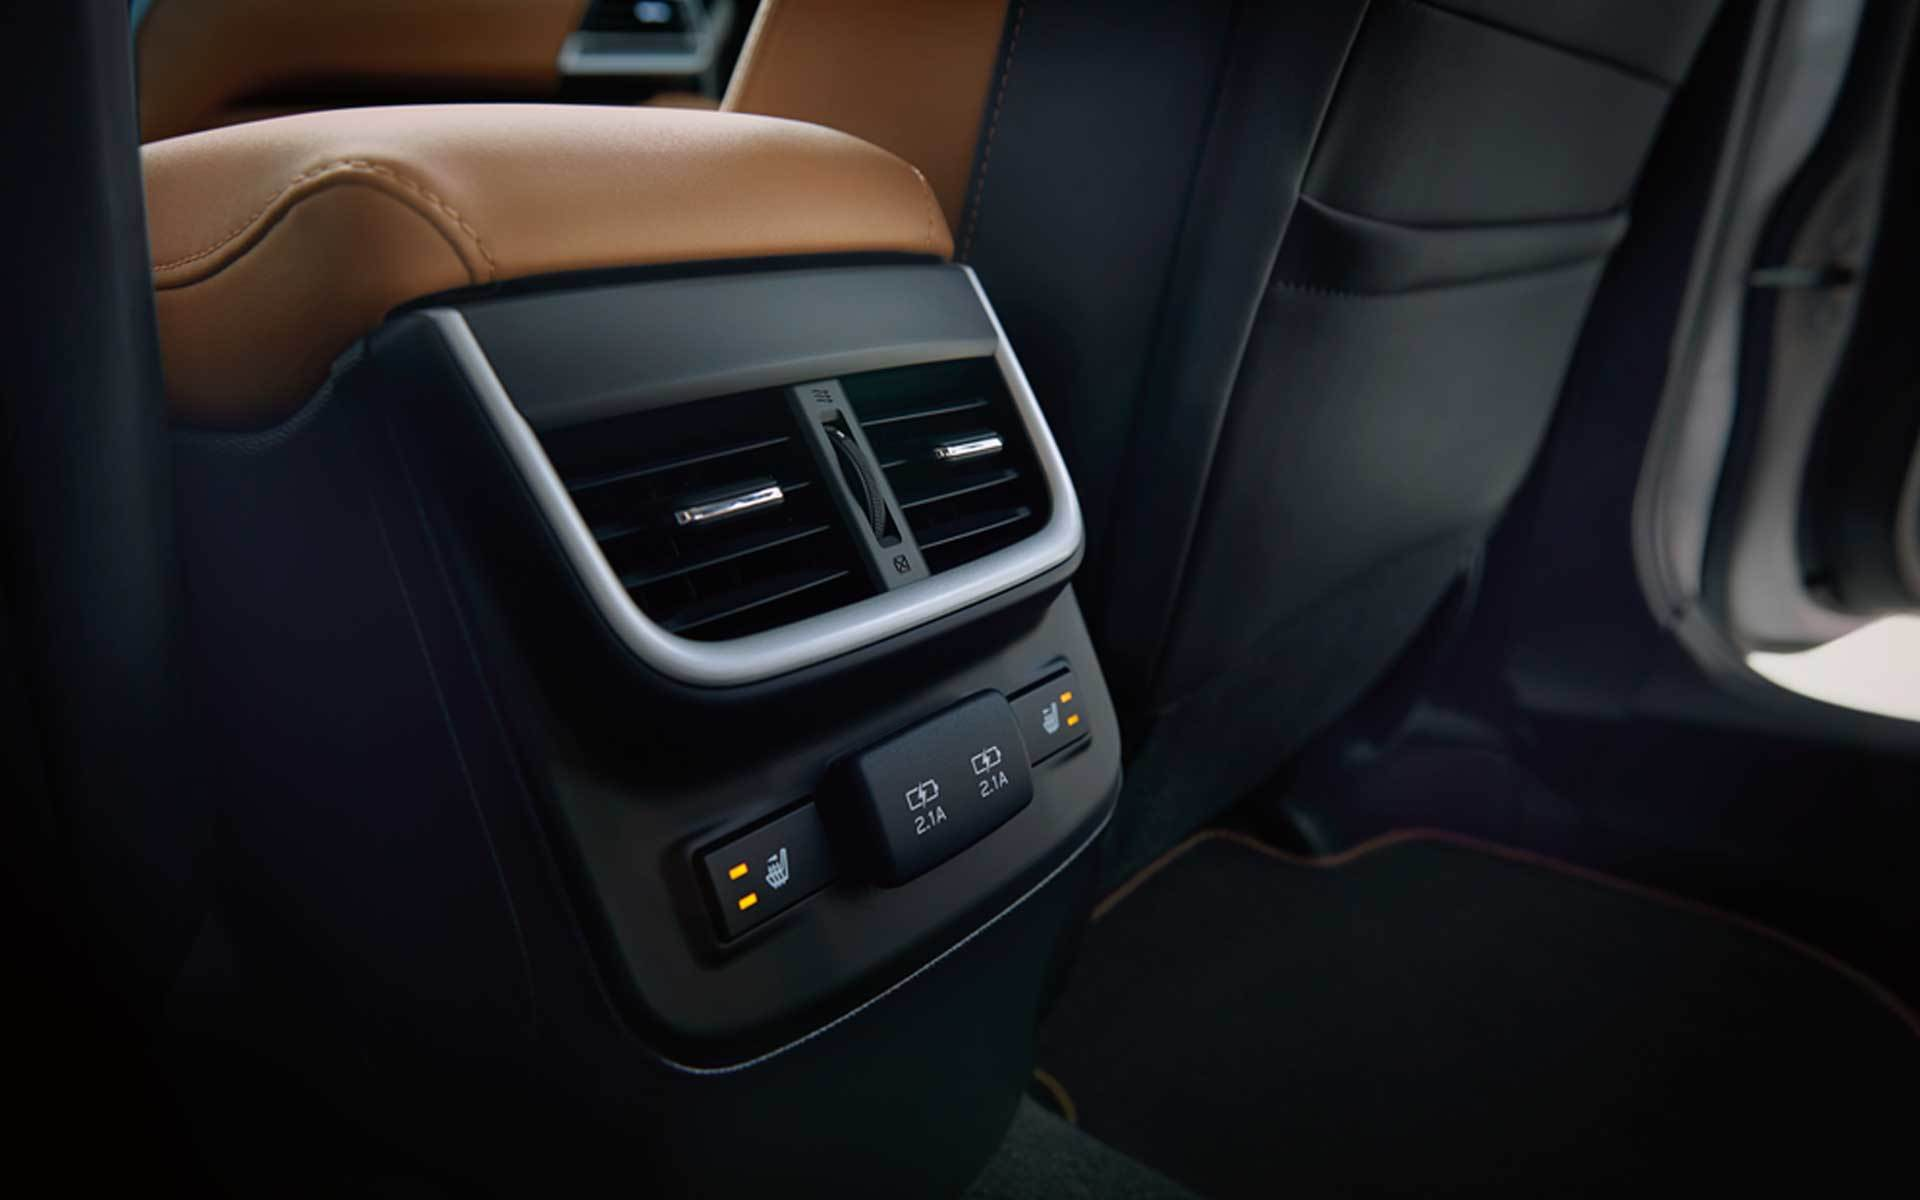 Subaru Image: Available rear-seat air conditioning vents, heated outboard seats and dual USB charging ports